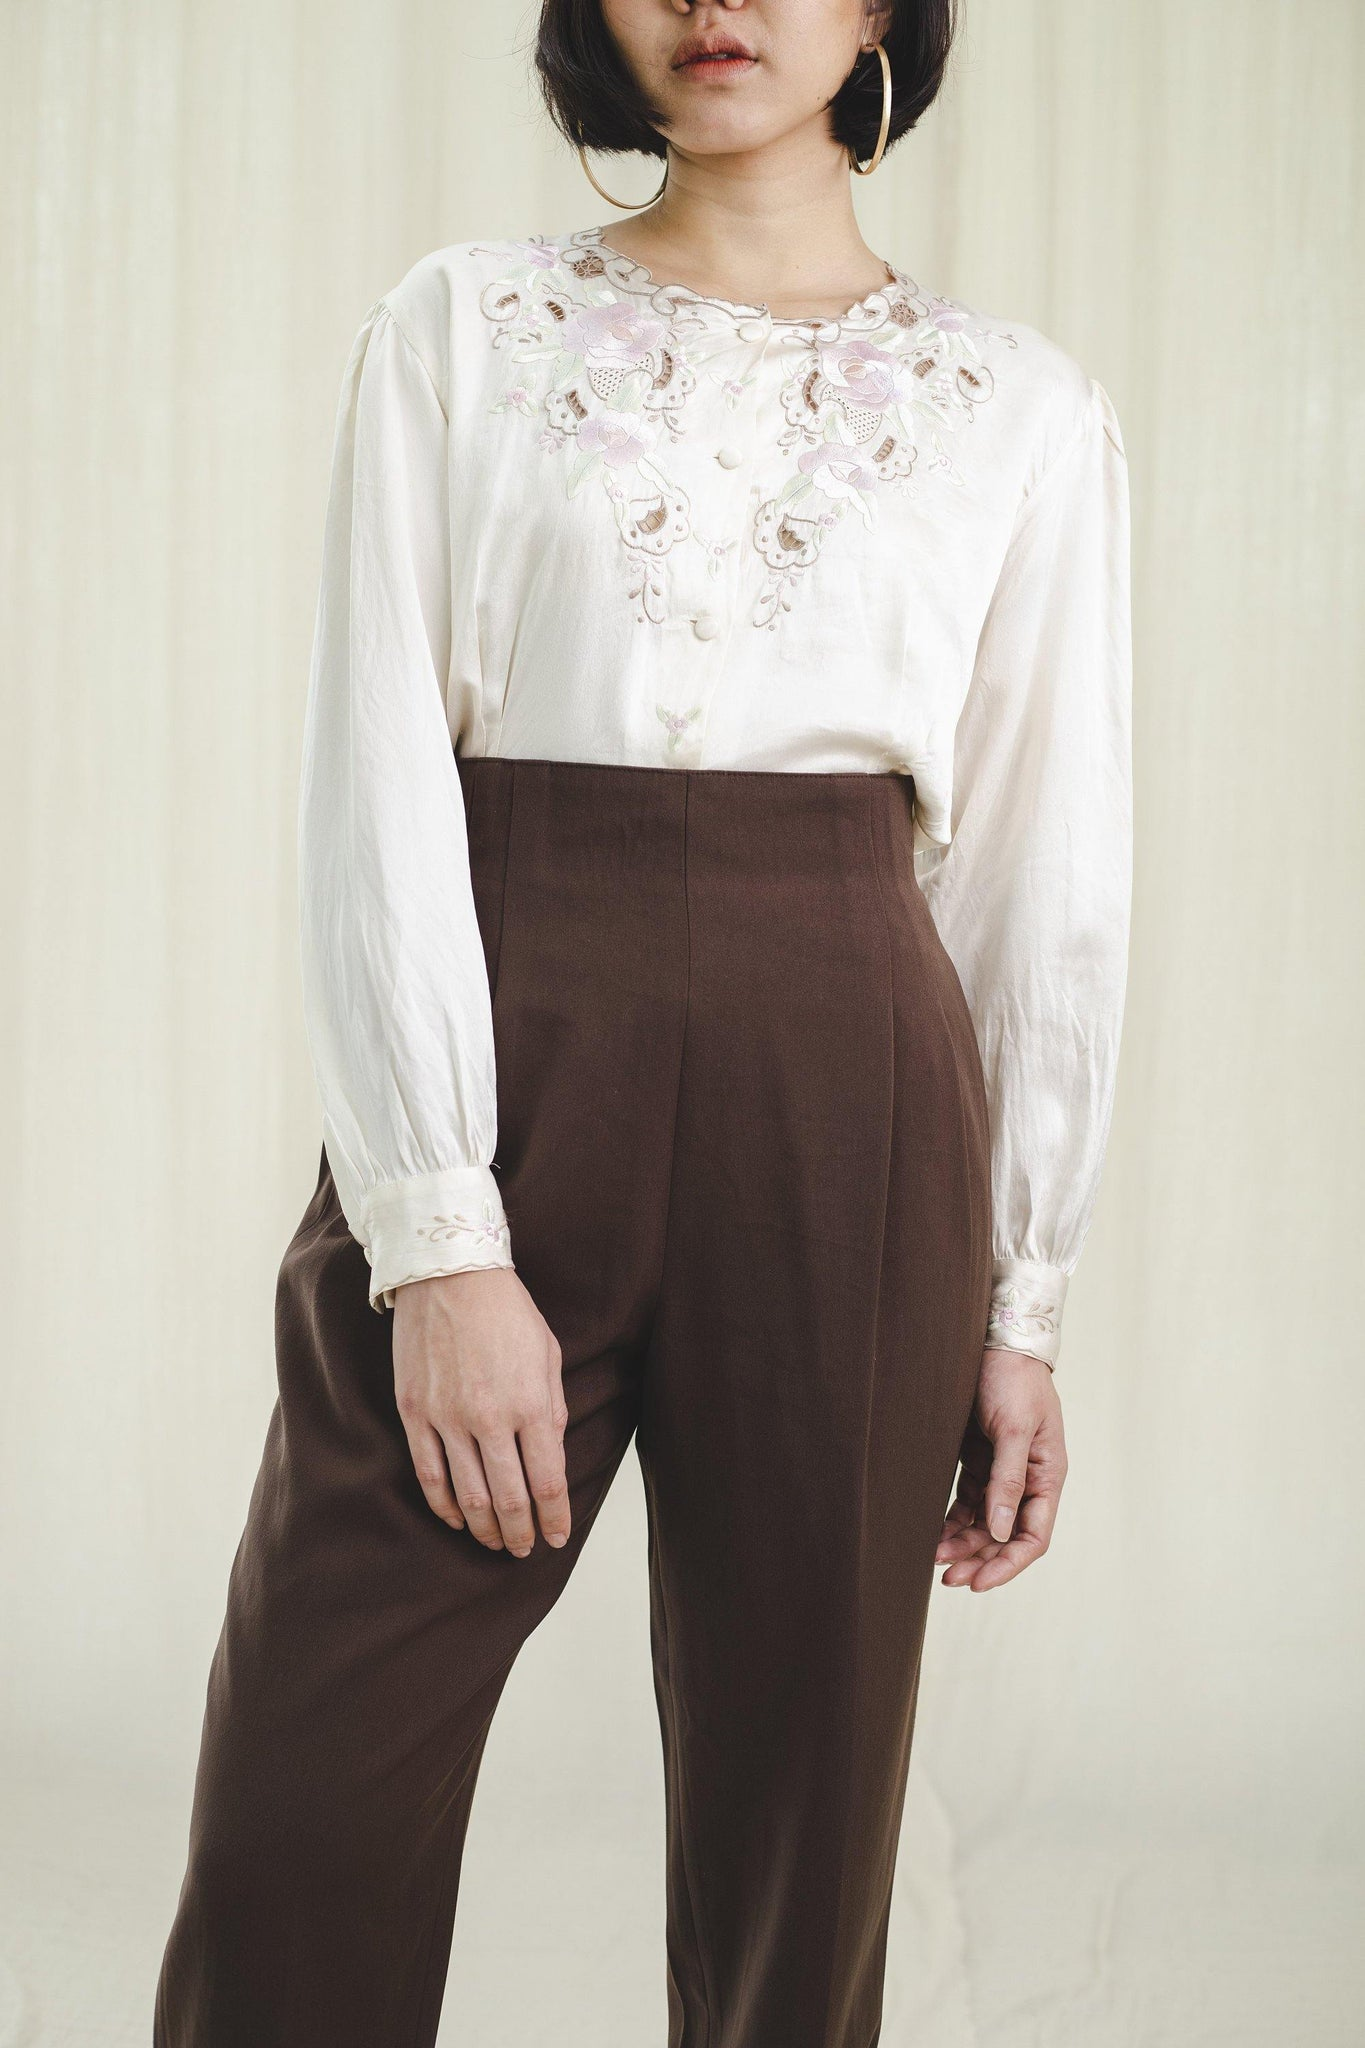 High-waisted vintage trousers in brown - Sugar & Cream Vintage